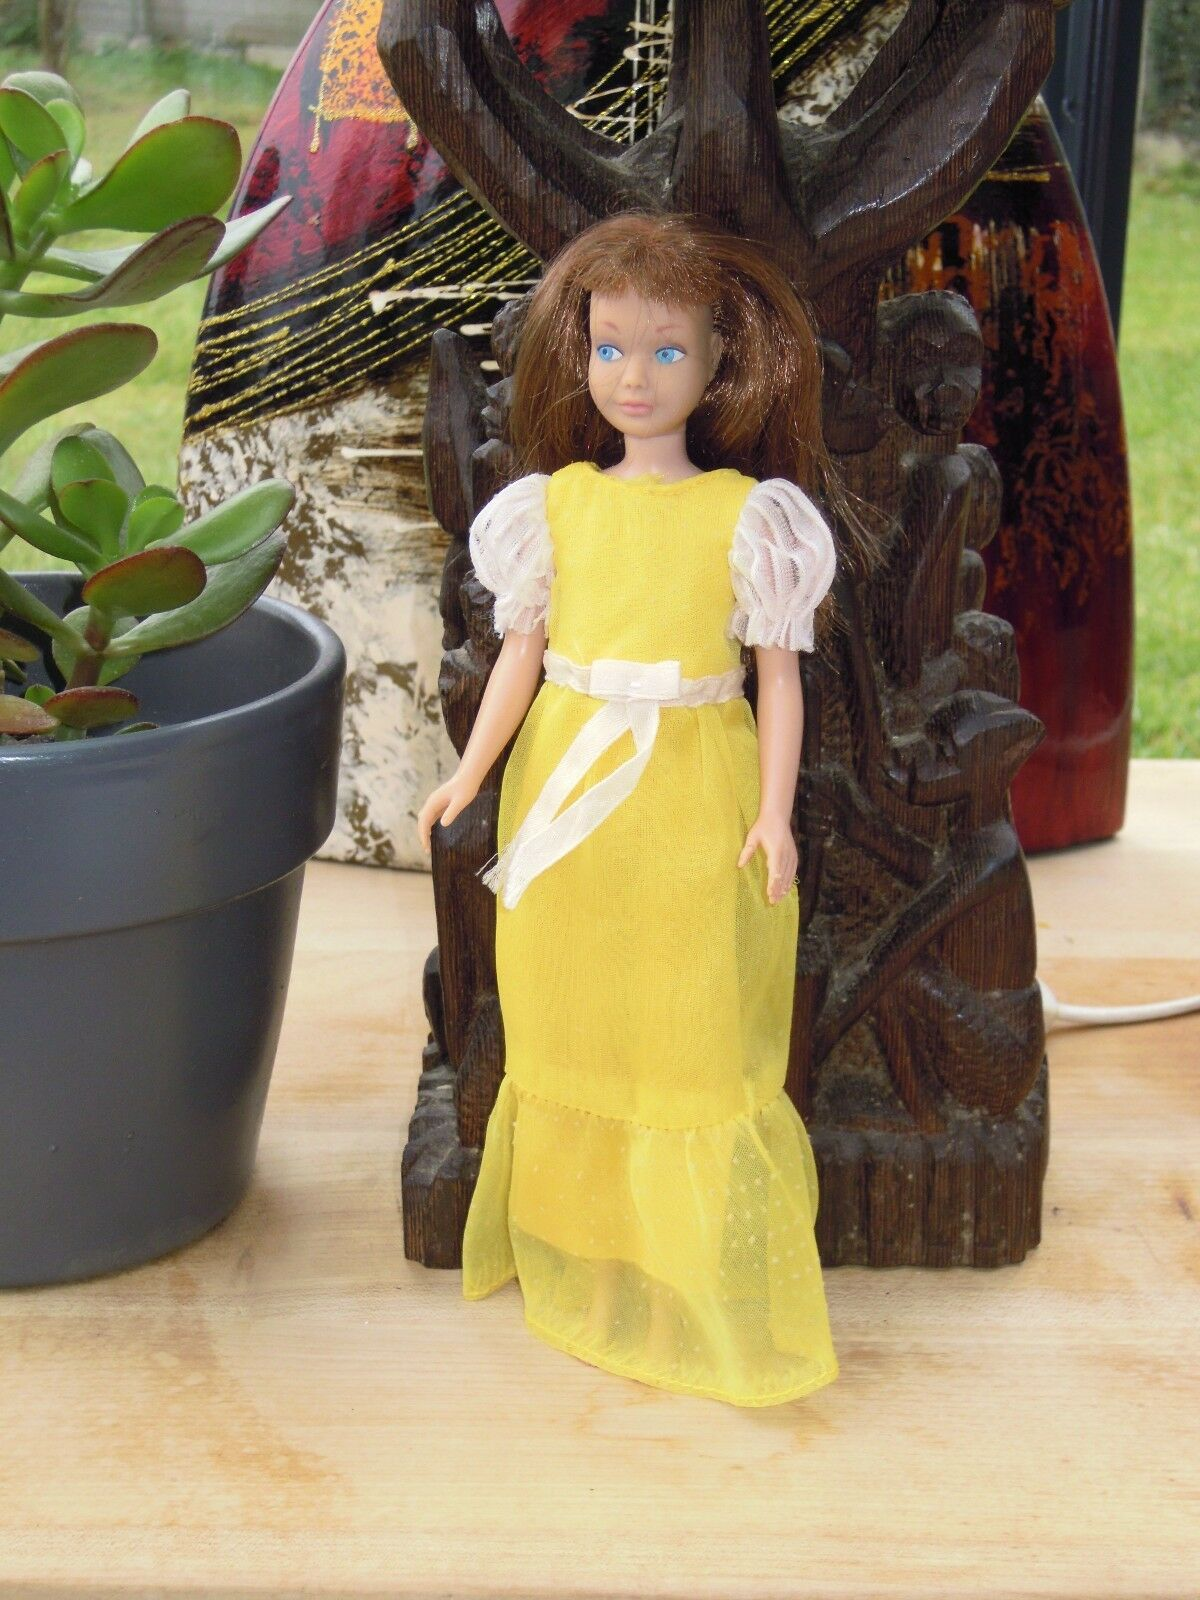 1964 SKIPPER HABILLEE CHEVEUX CHATAIN   AUBURN EN BON ETAT   BARBIE